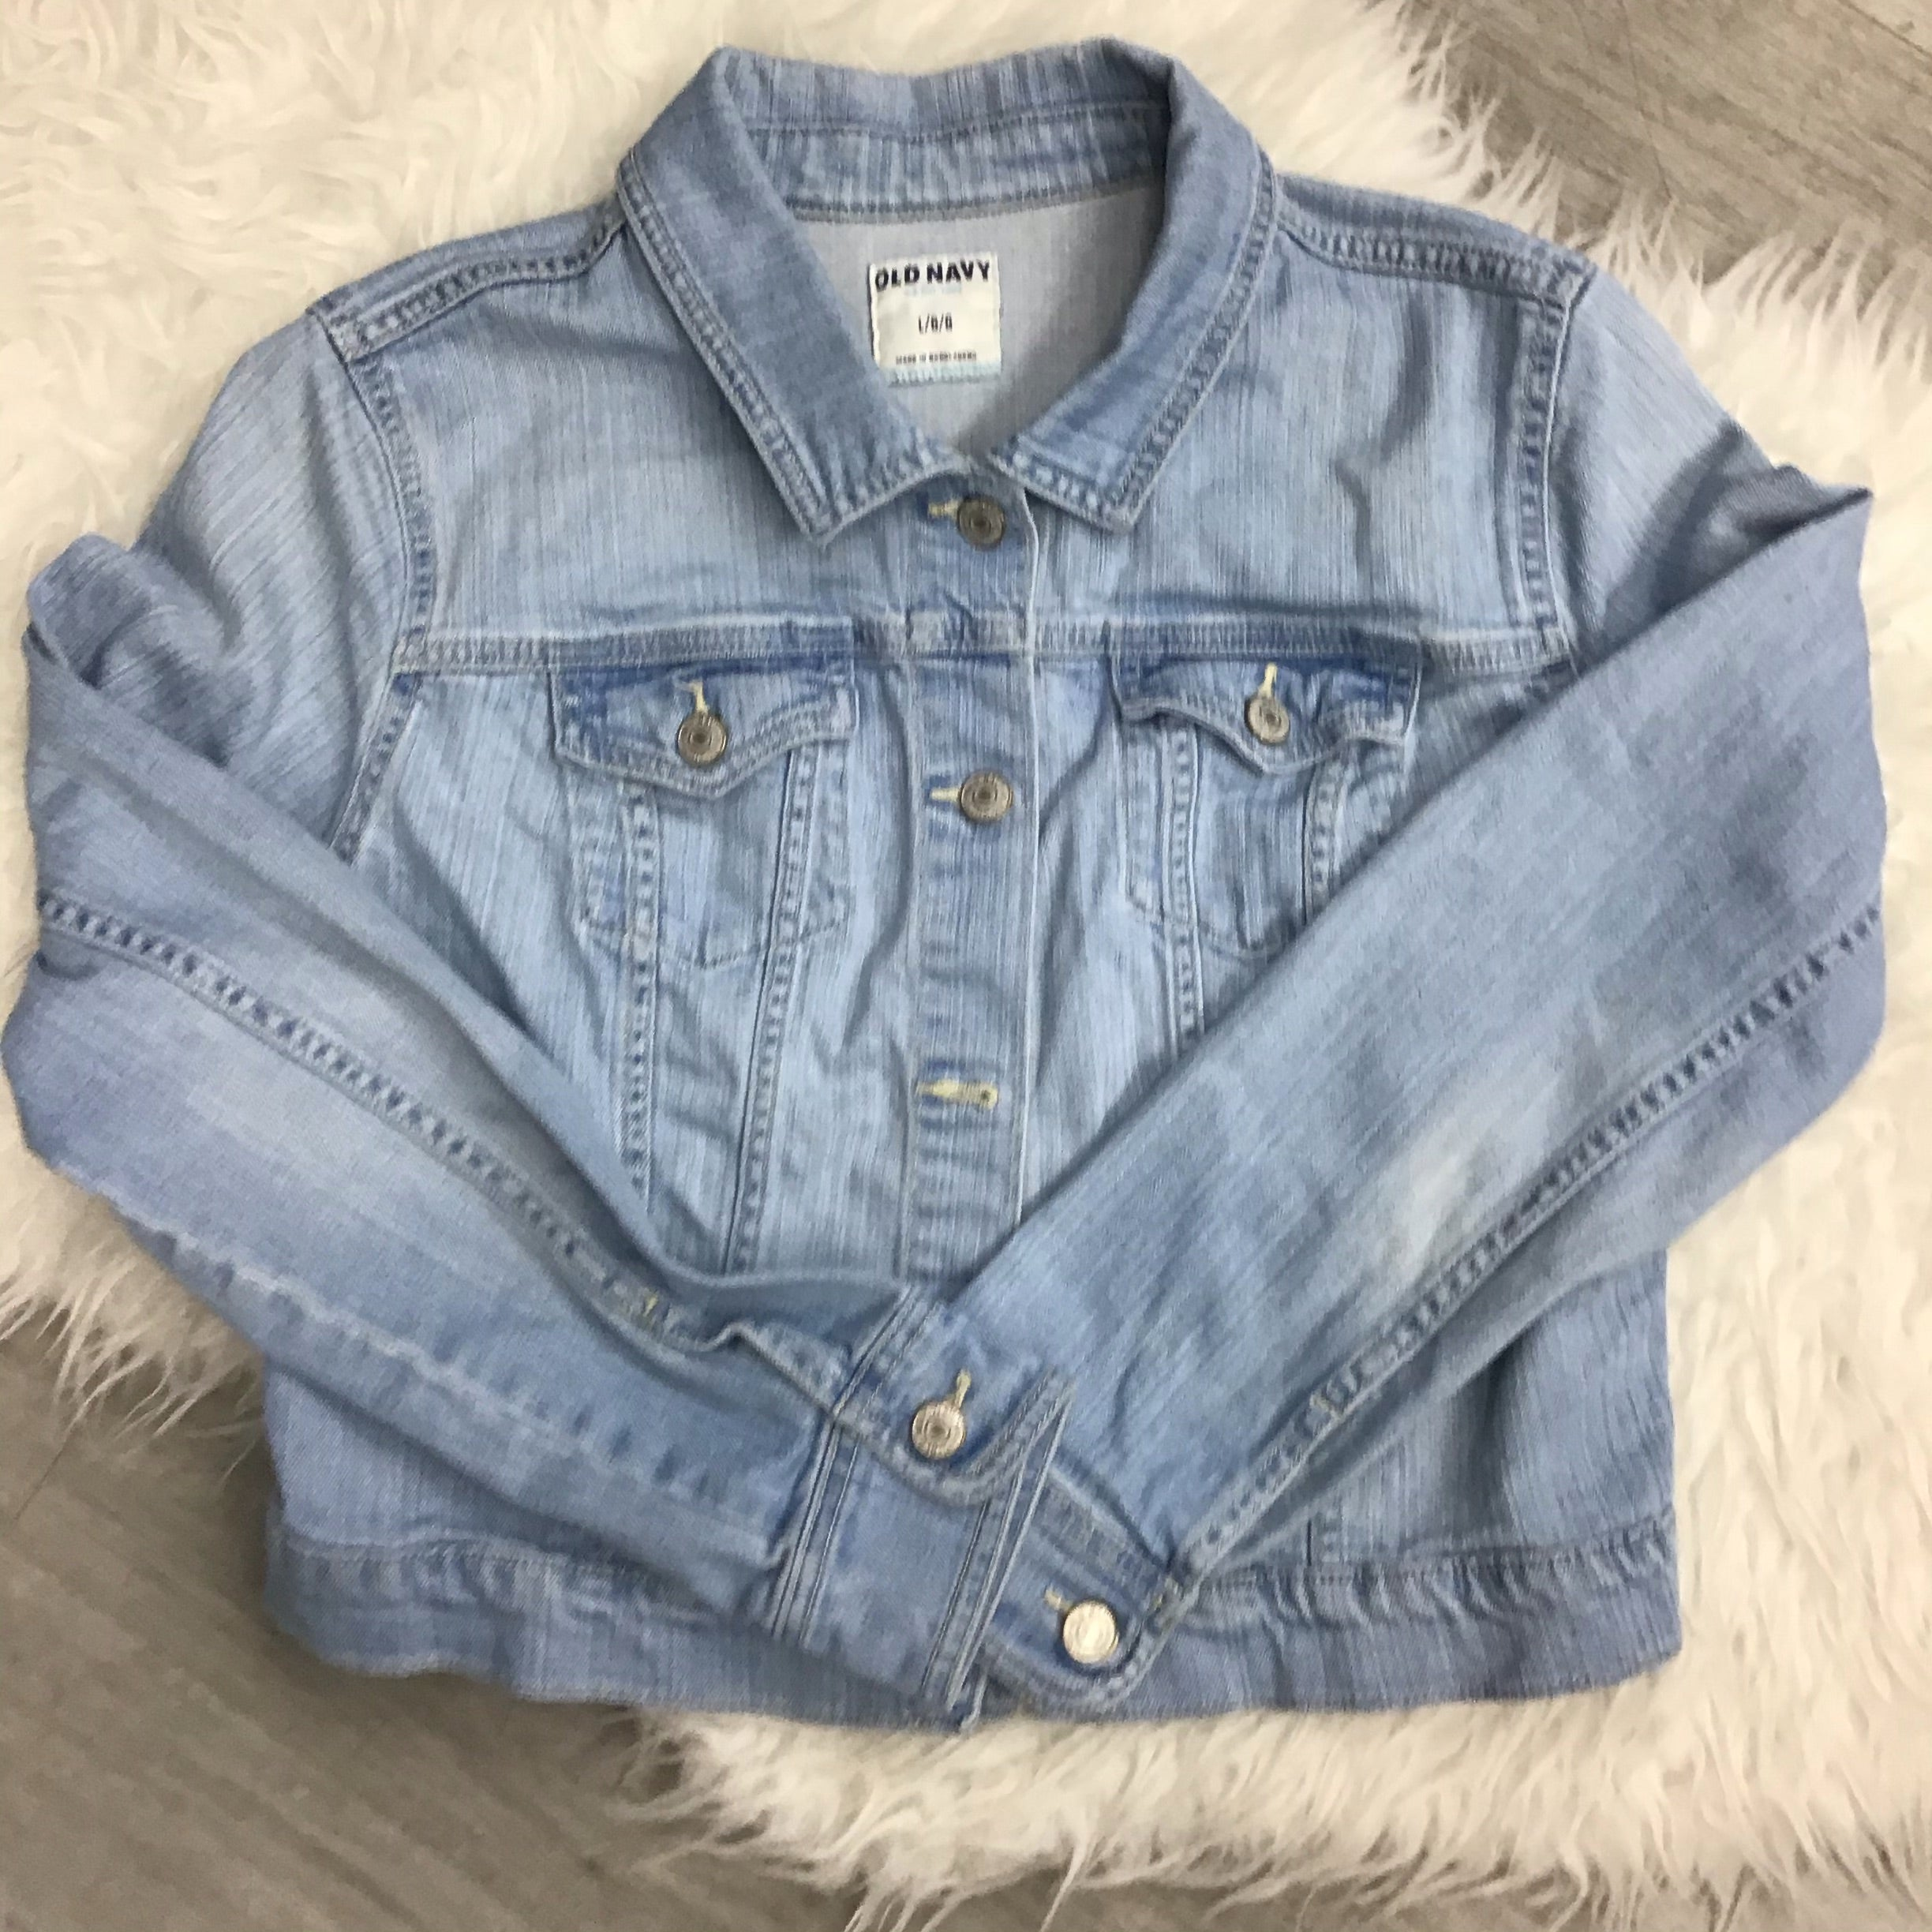 Old Navy - Large